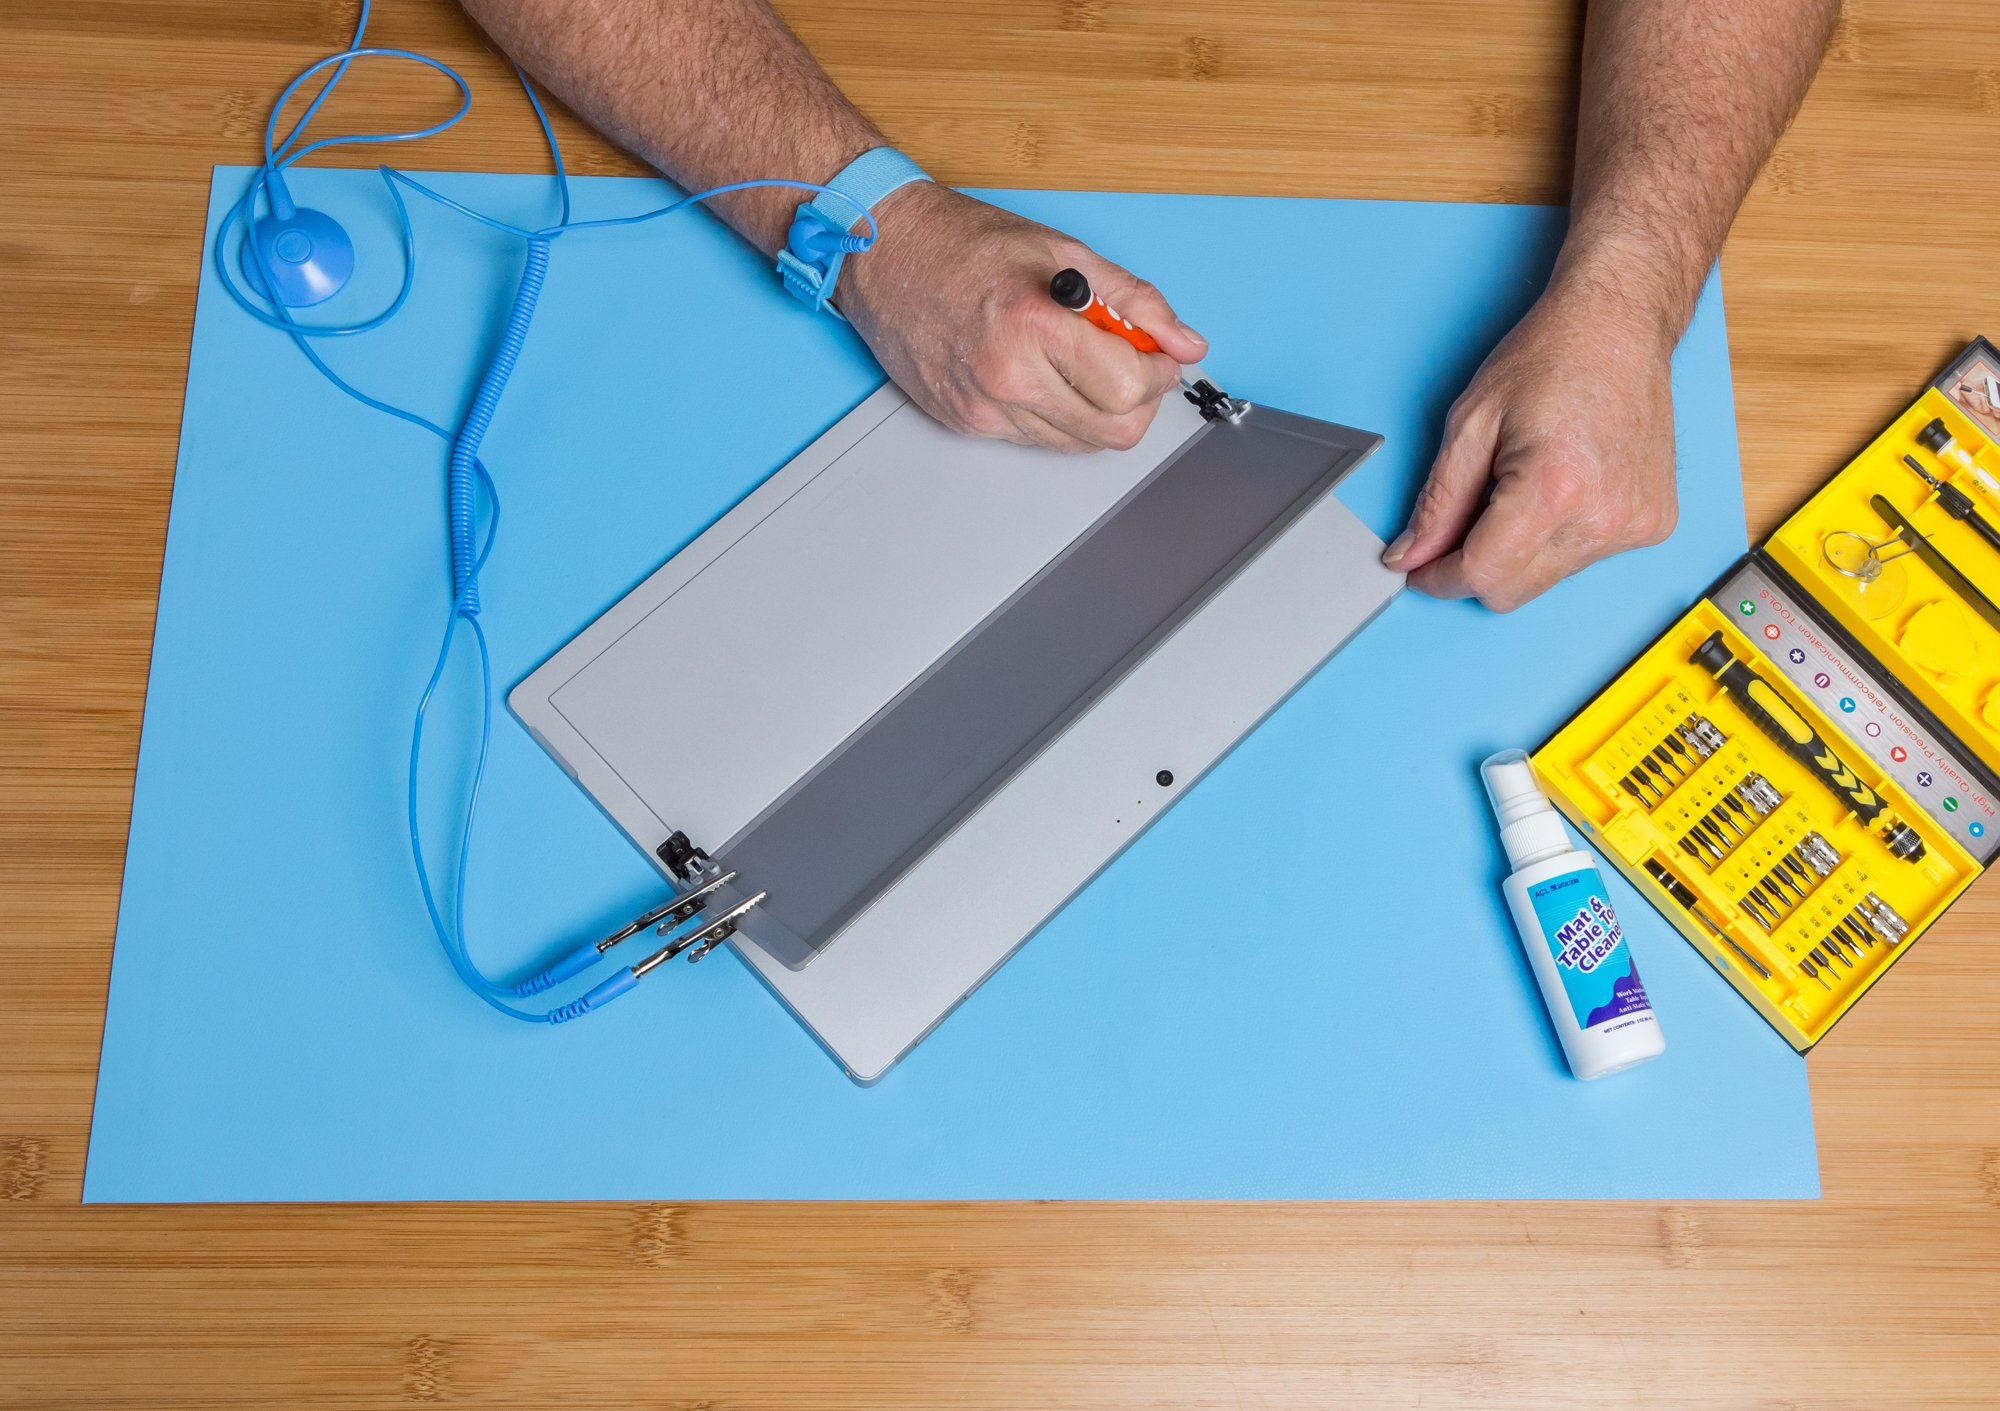 ESD High Temperature Mat Kit | 24'' x 36'' | Sky Blue | with (1) ESD Wrist Strap, (1) ESD Grounding Cord, (1) Bottle of Mat Cleaner by MagnifyLabs (Image #5)